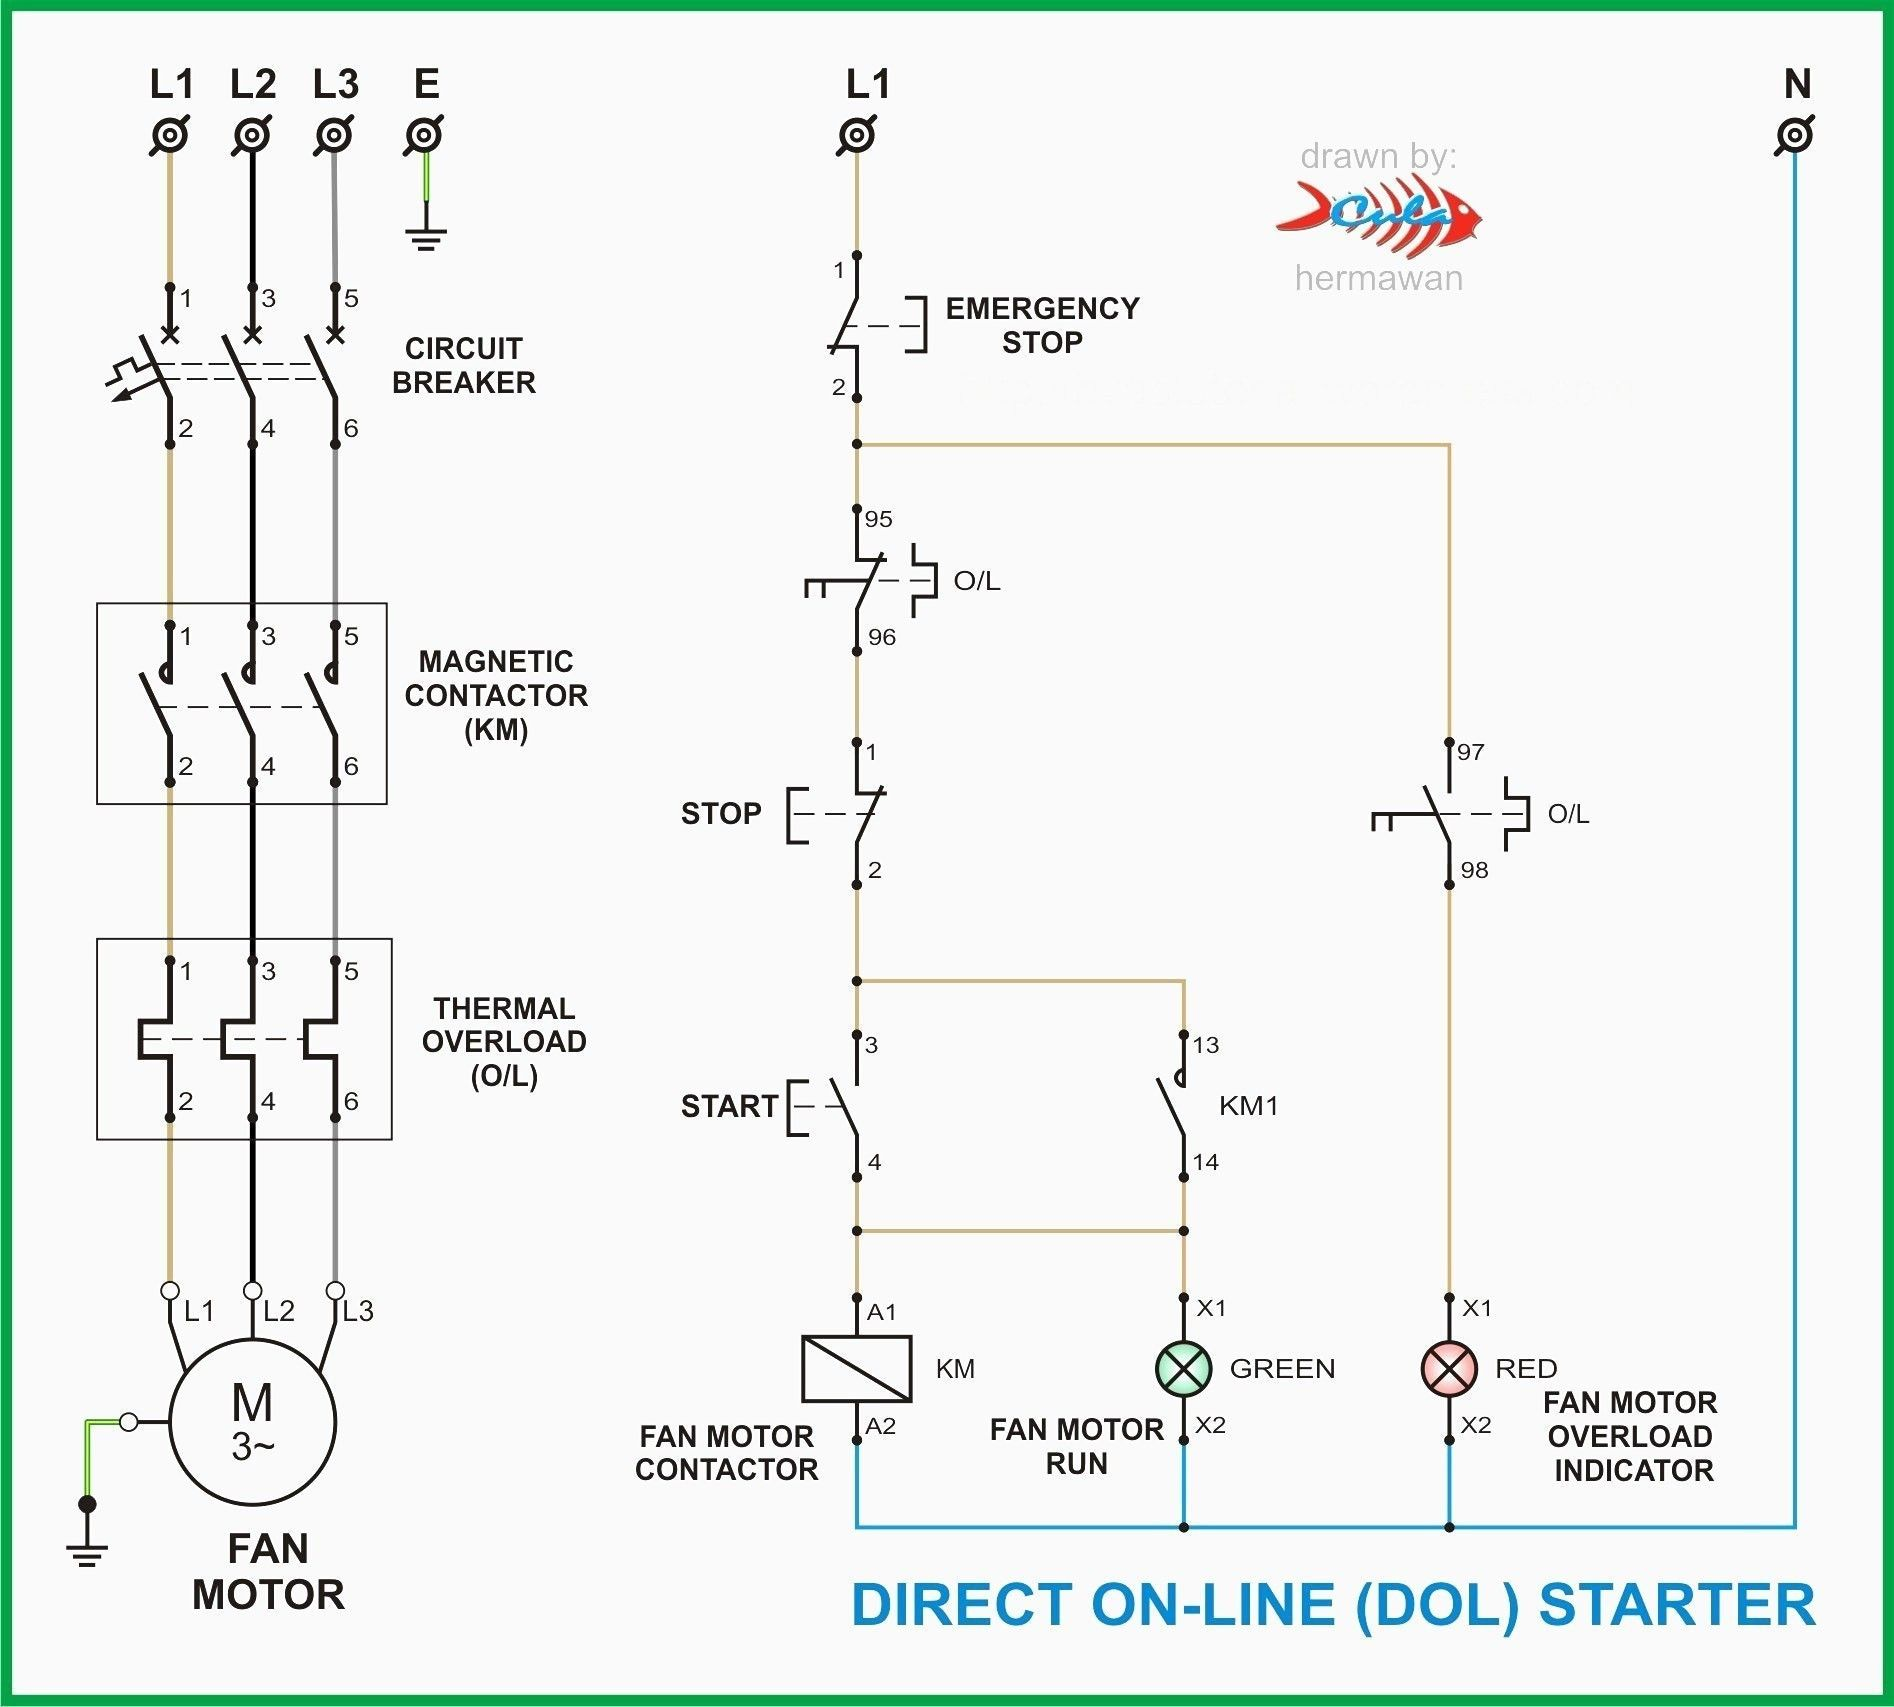 Contactor Wiring Diagram With Timer Diagram Diagramtemplate Diagramsample Electrical Circuit Diagram Circuit Diagram Electric Circuit